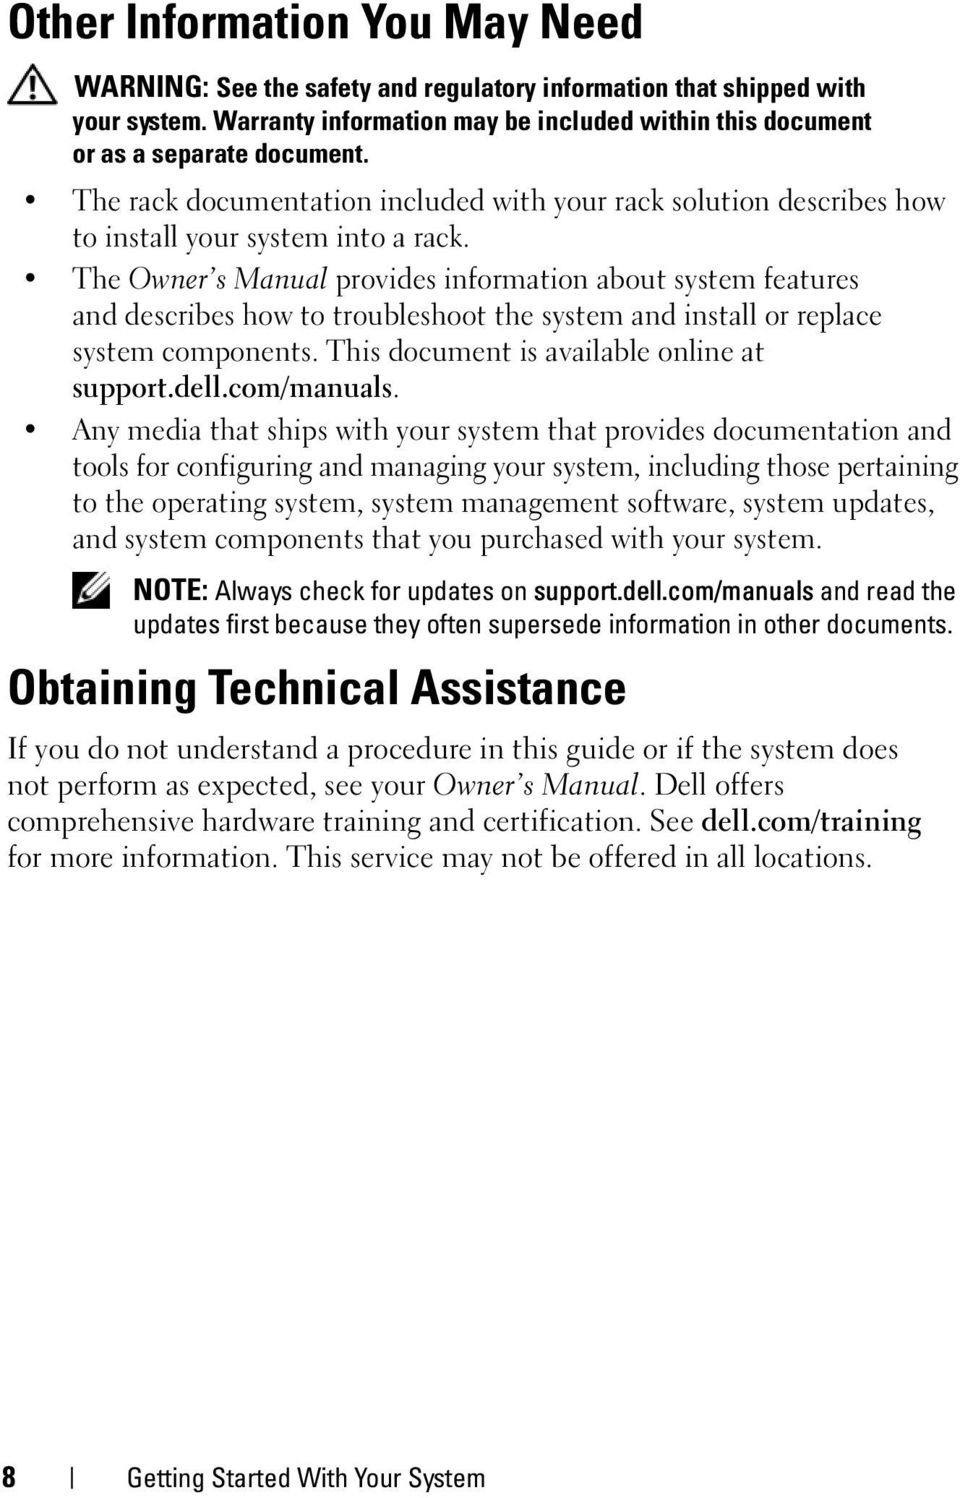 The Owner s Manual provides information about system features and describes how to troubleshoot the system and install or replace system components. This document is available online at support.dell.